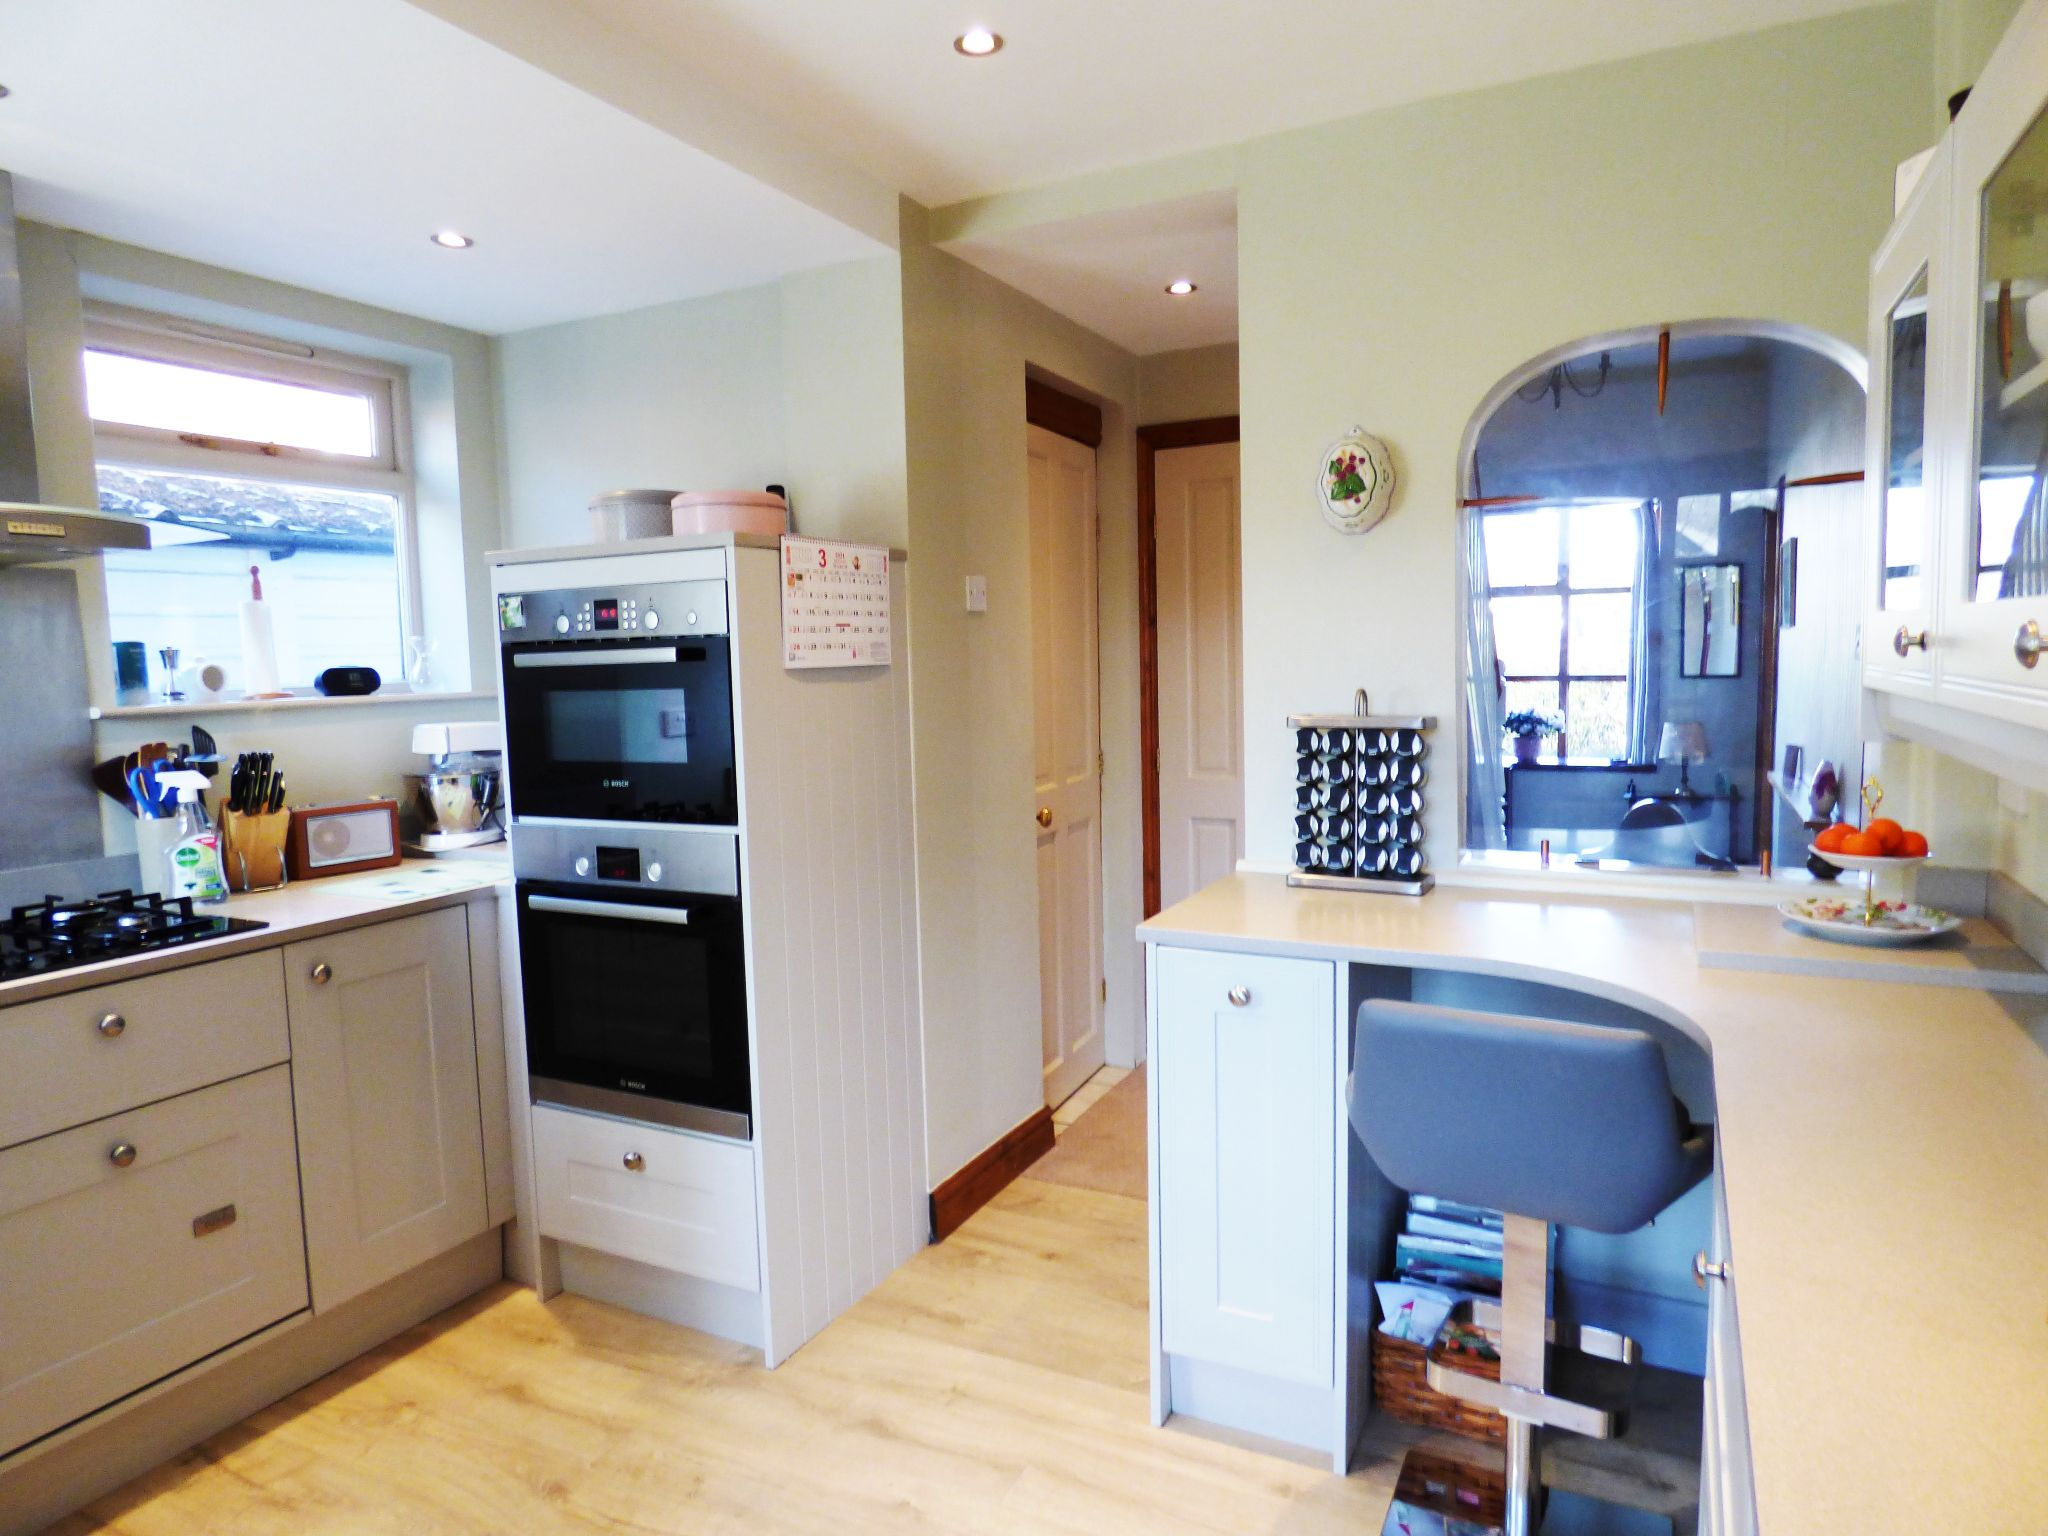 3 Bedroom Detached House For Sale - Kitchen